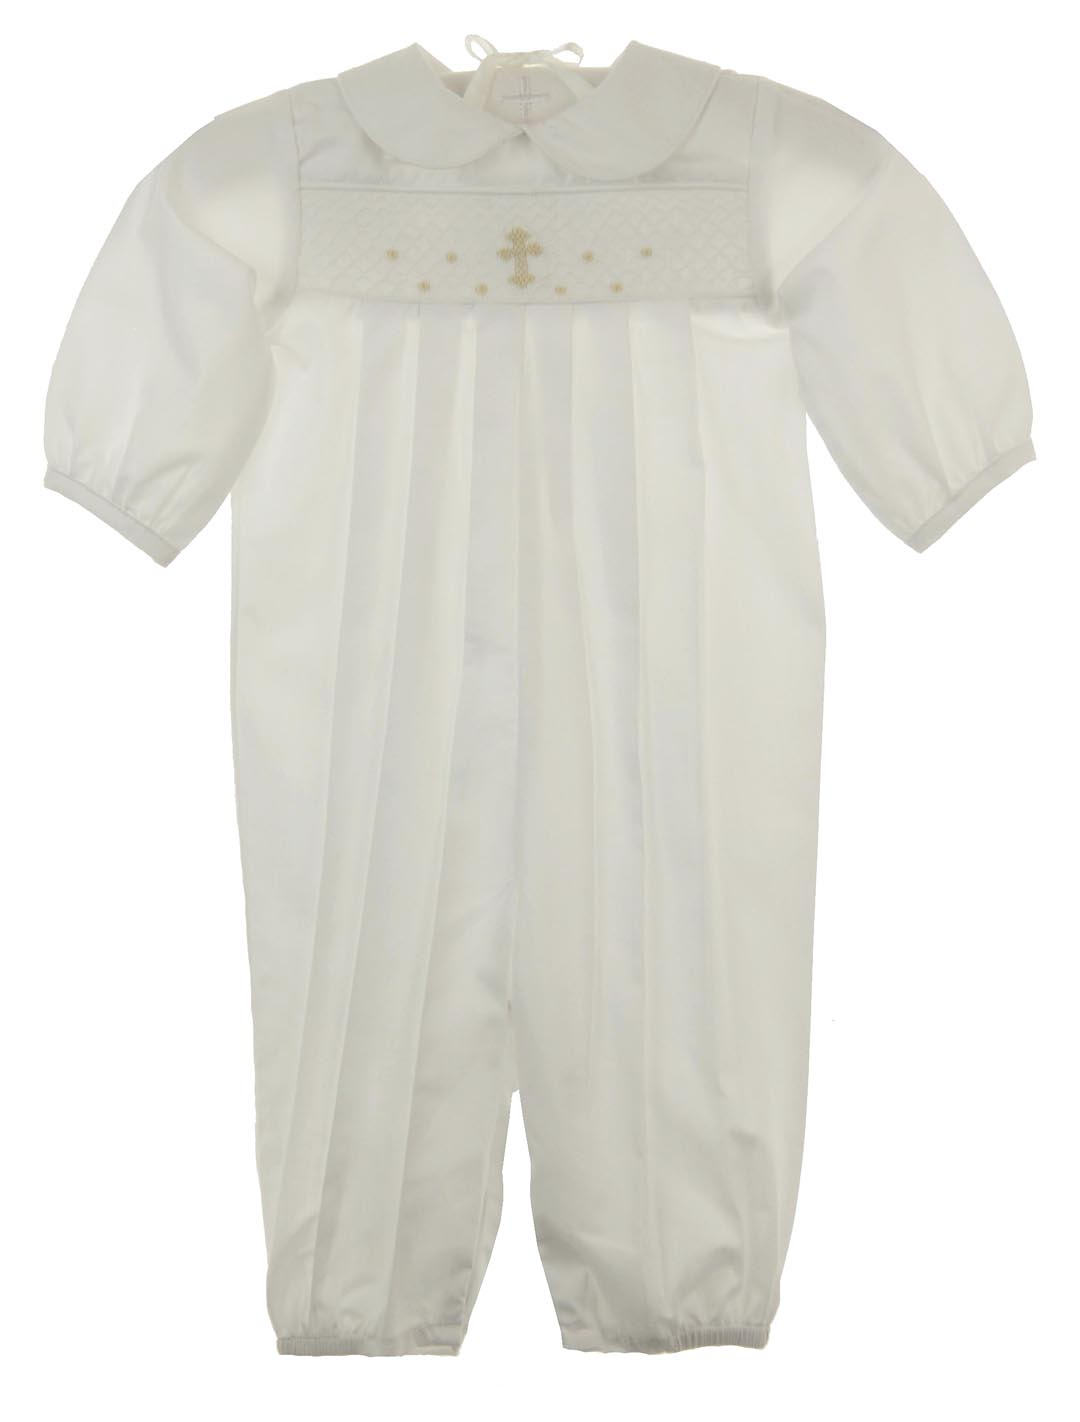 a9fc2ee386a1 NEW Bailey Boys White Smocked Romper with Ivory Embroidered Cross